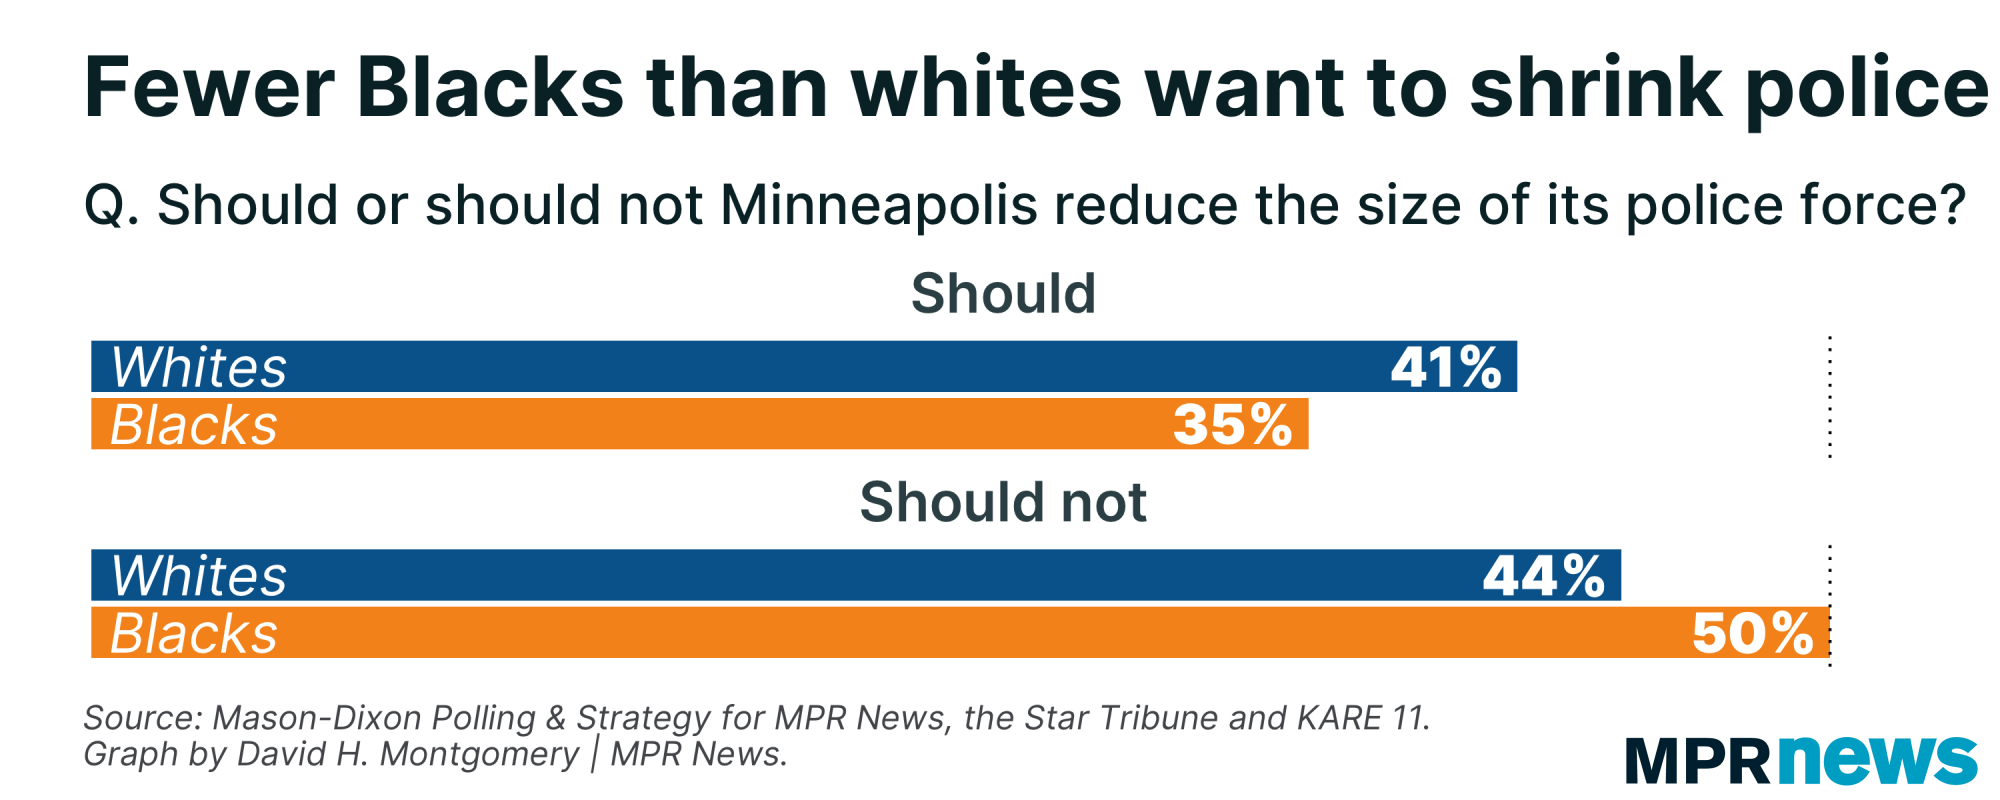 Shrinking the Minneapolis police is more popular among white voters